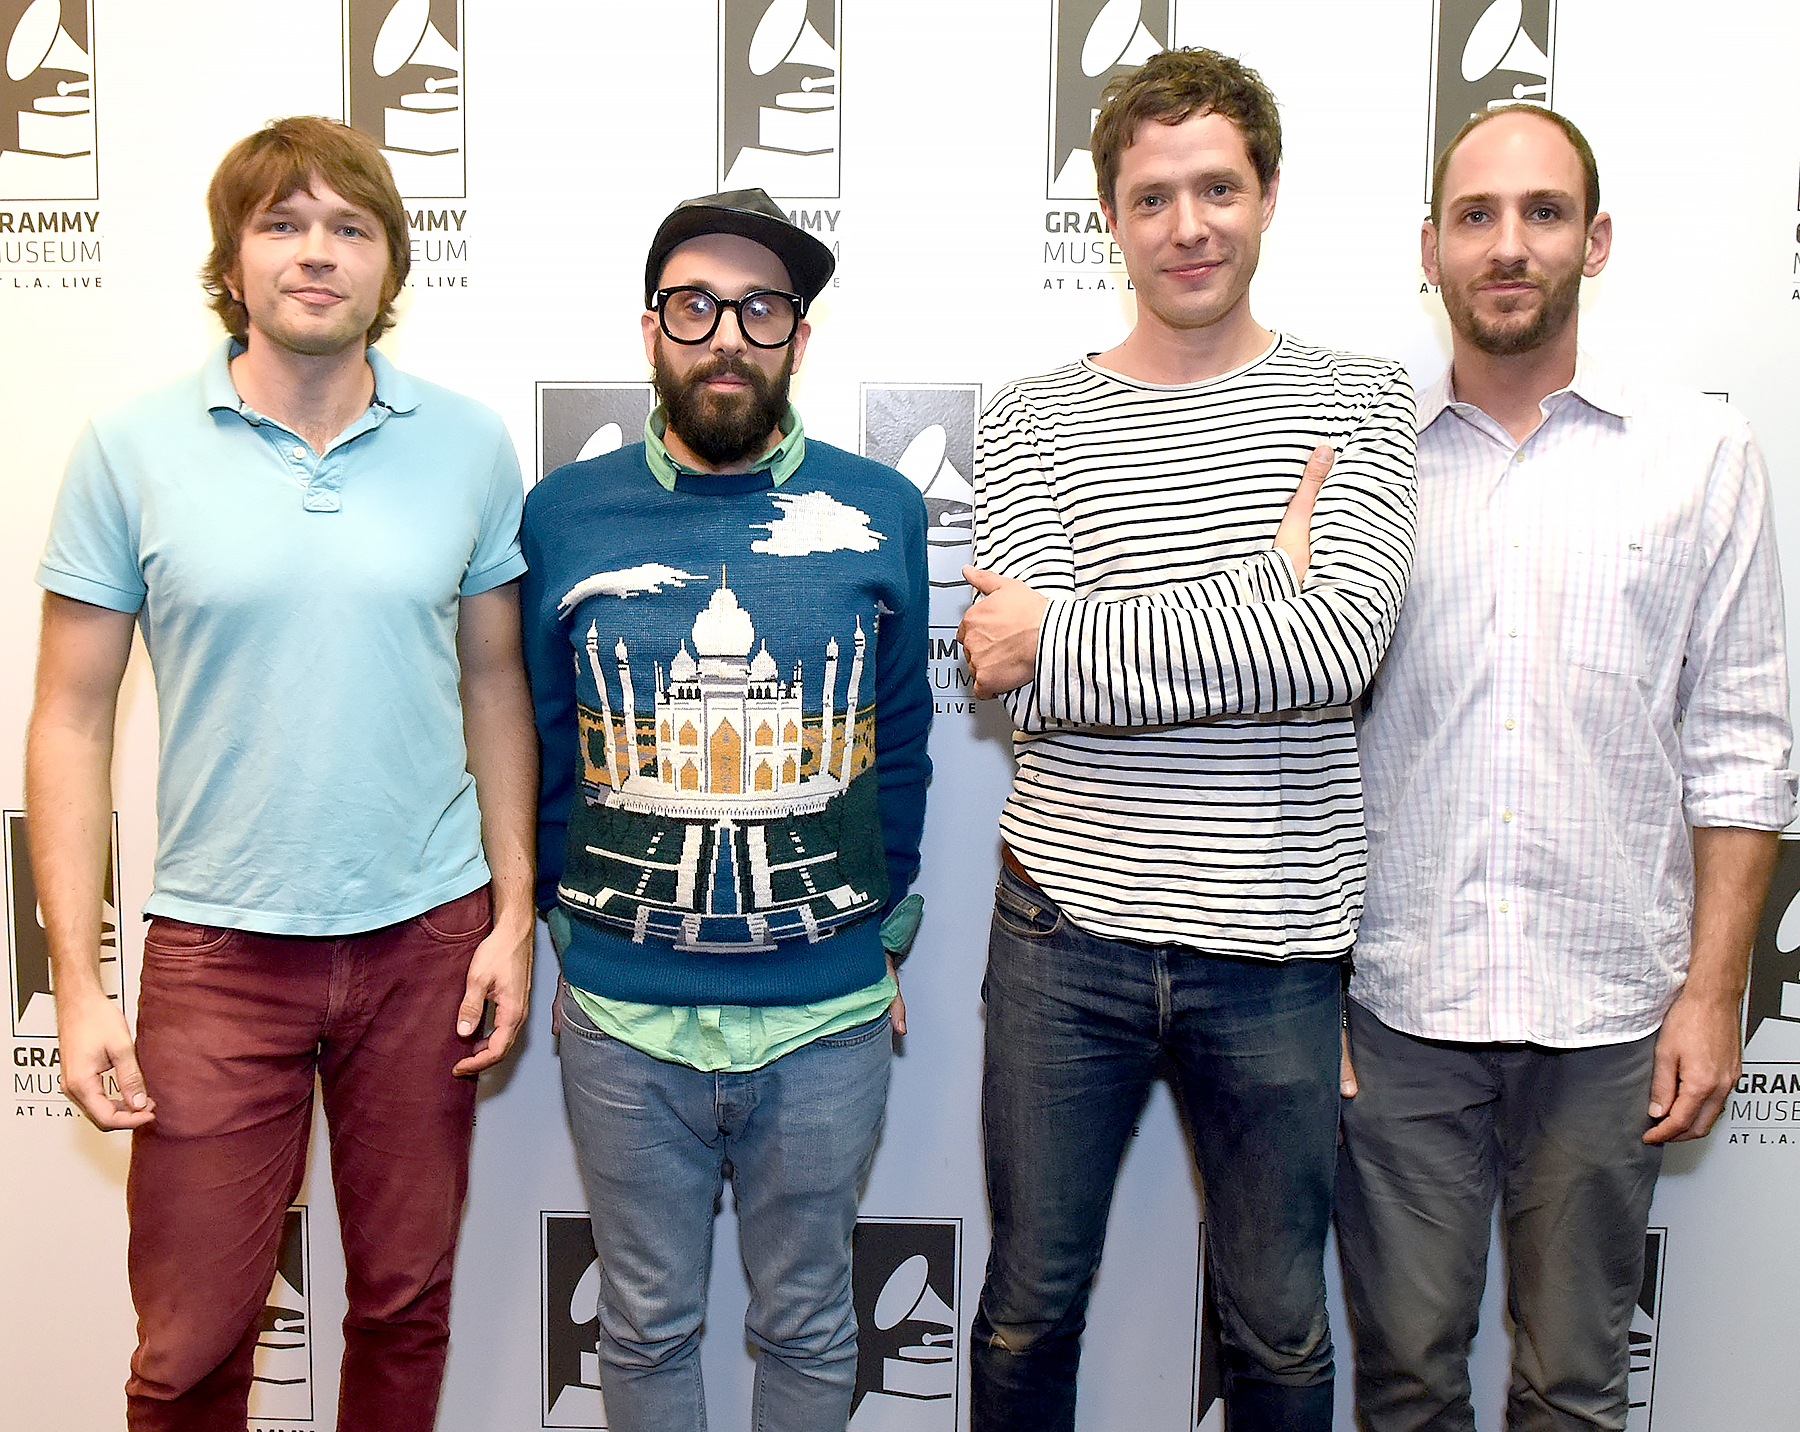 Musicians Andy Ross, Tim Nordwind, Damian Kulash and Dan Konopka at The Drop: OK Go at The GRAMMY Museum on October 29, 2014 in Los Angeles, California.